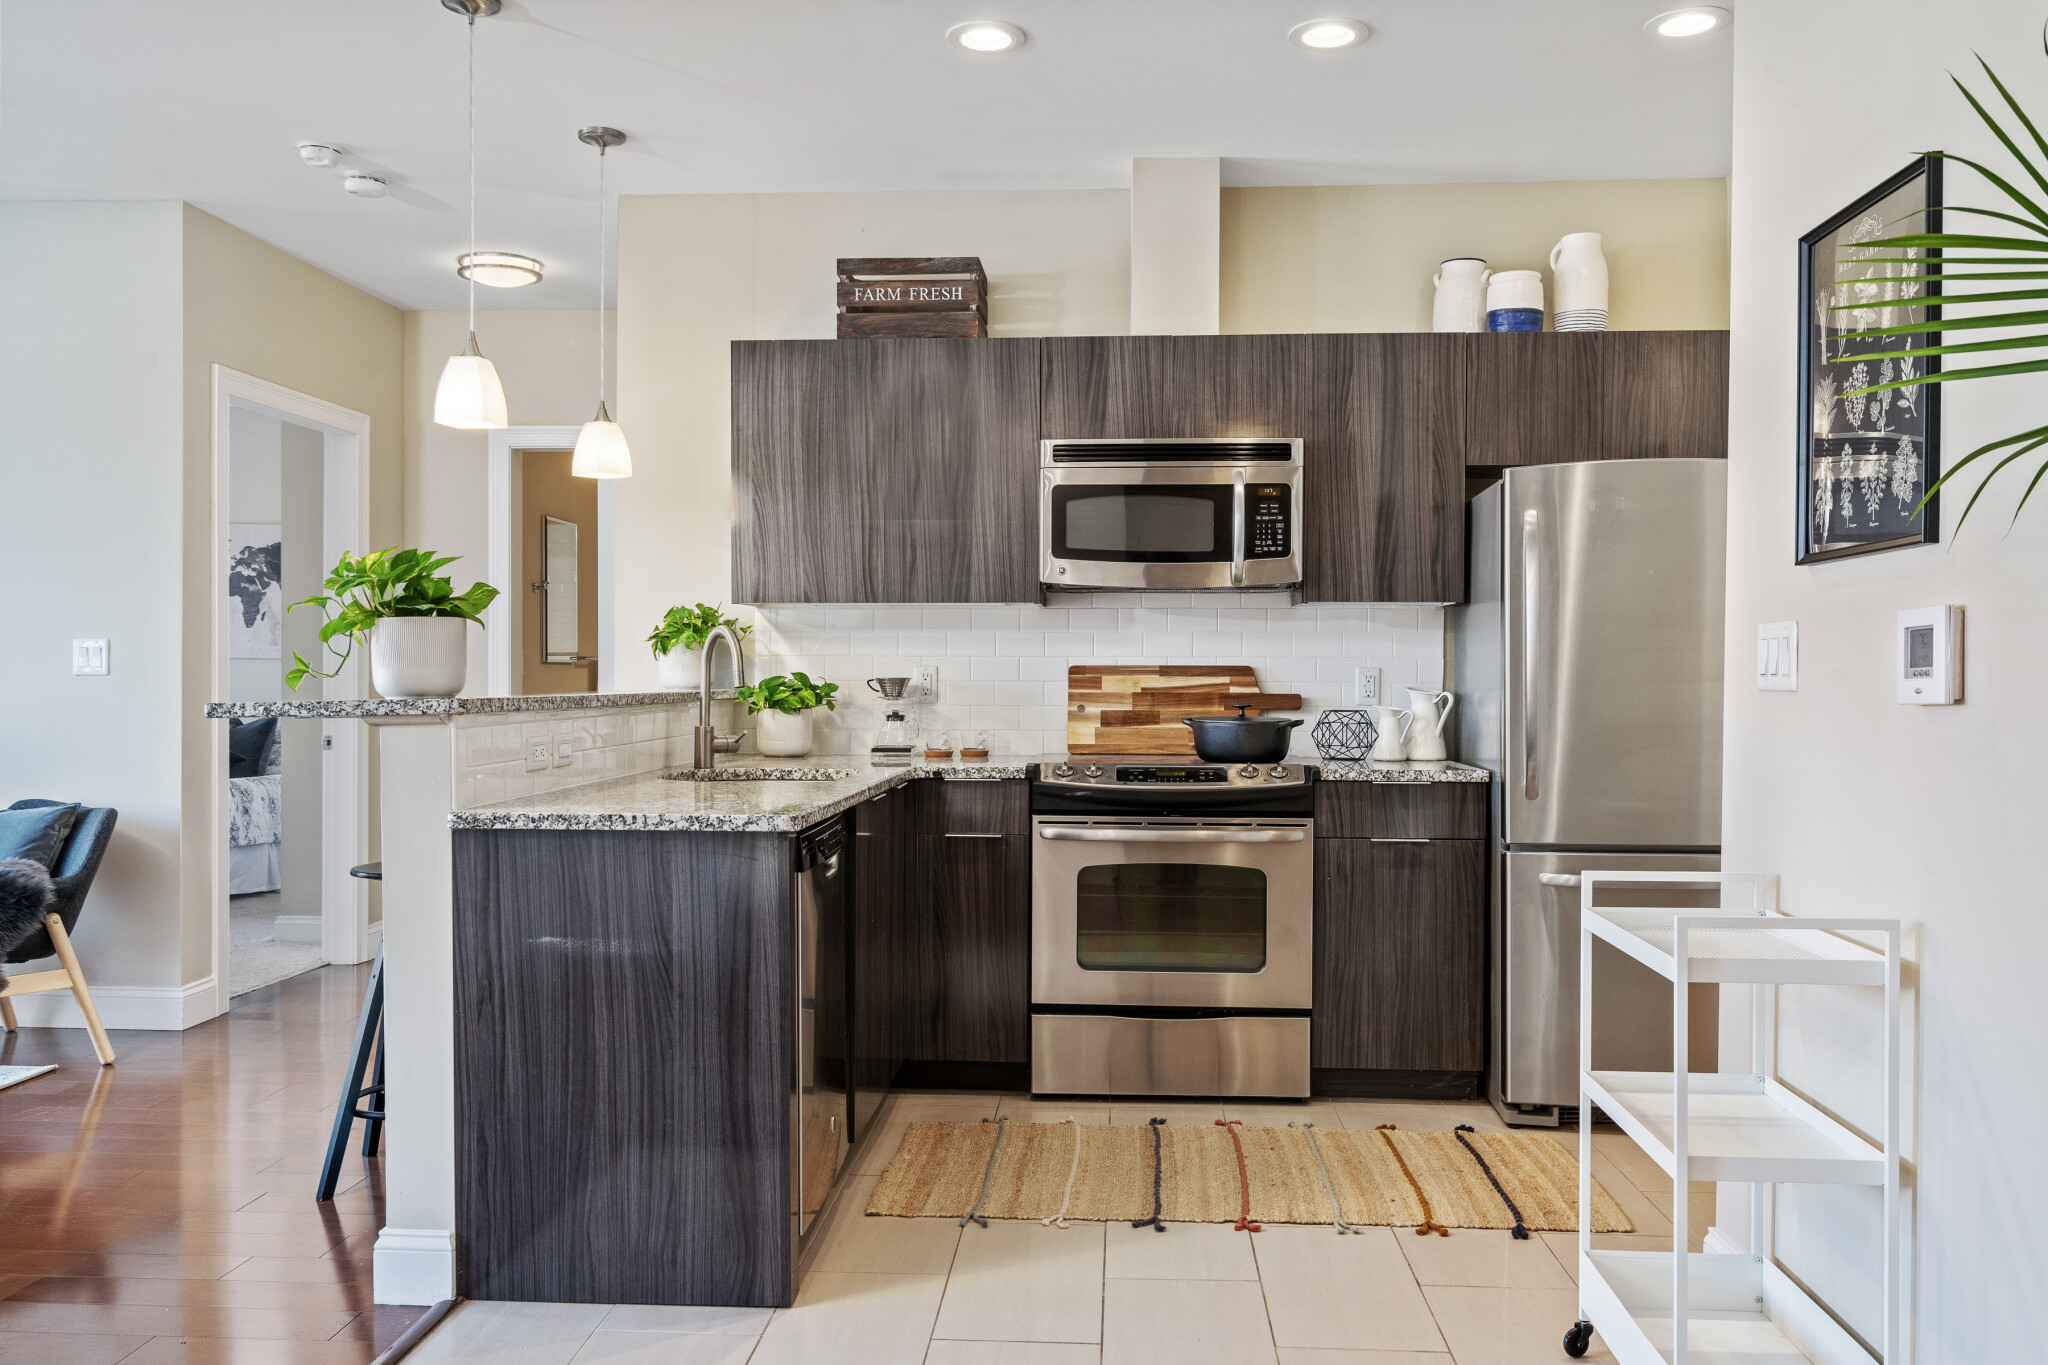 1.5 Beds, 1 Bath apartment in Boston, South Boston for $2,640